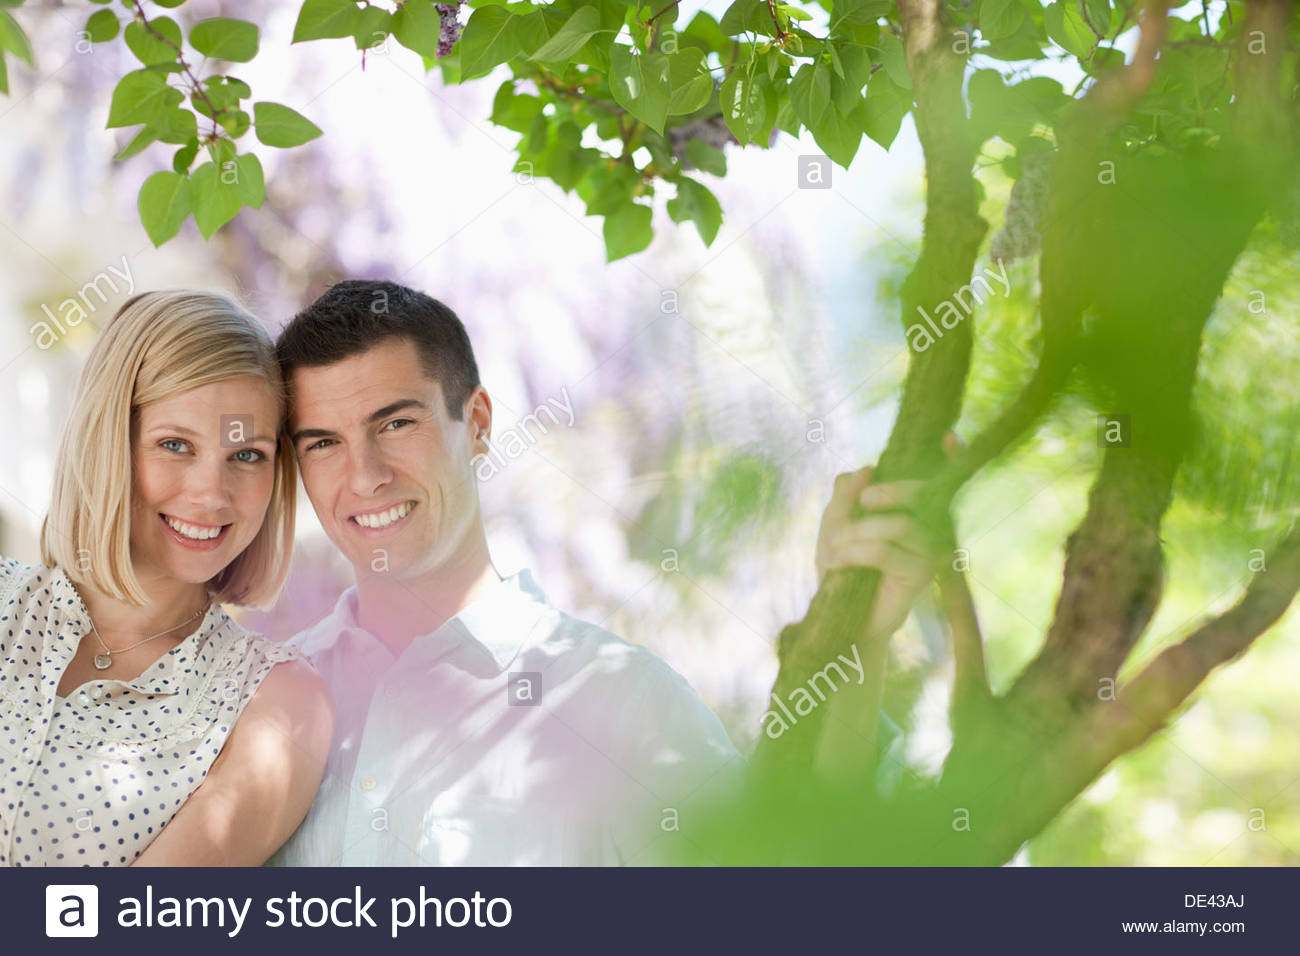 Couple smiling together outdoors Photo Stock